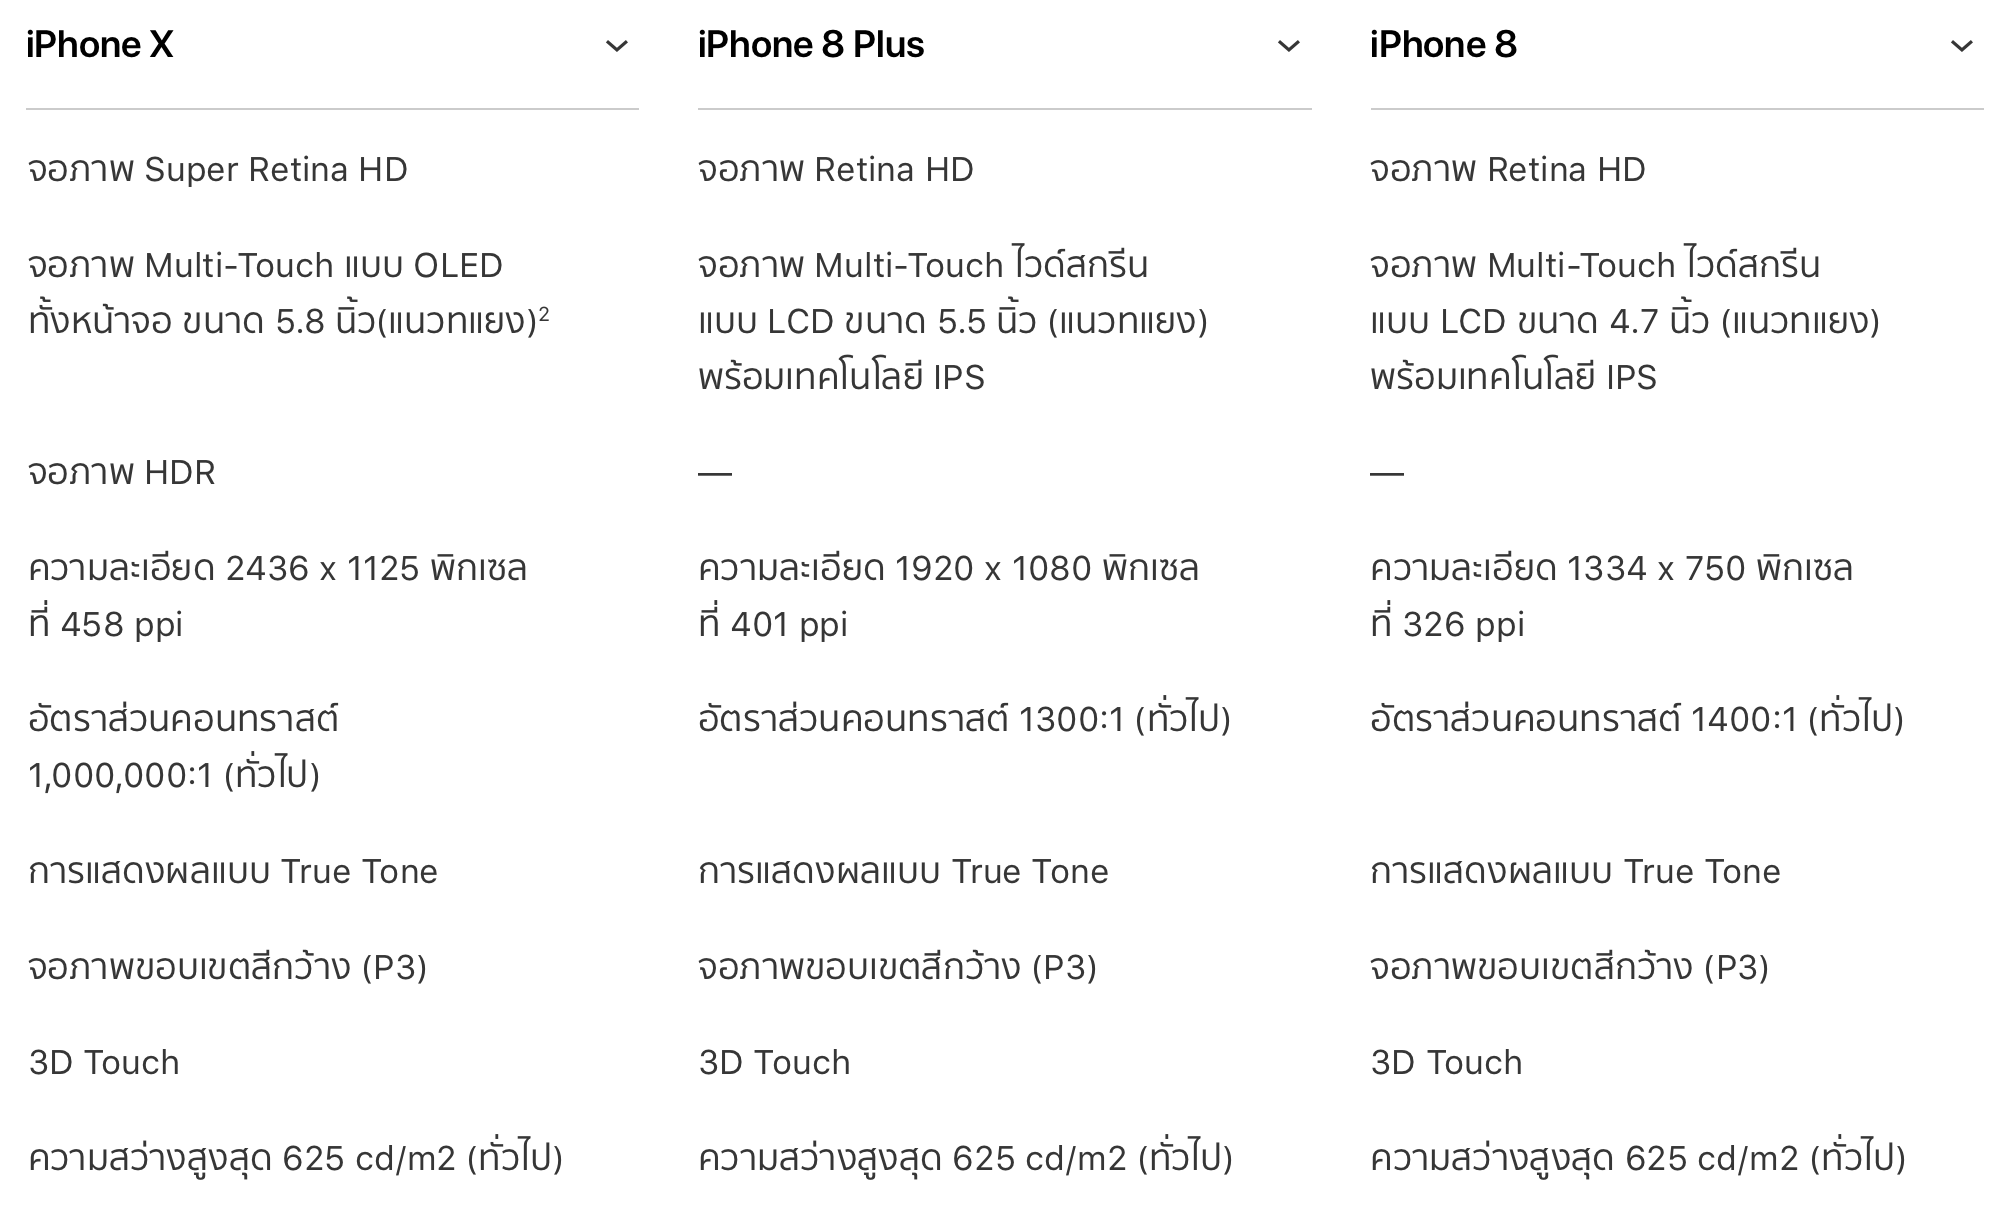 Compare-iPhone-X-iPhone-8-and-iPhone-8-Plus-00009